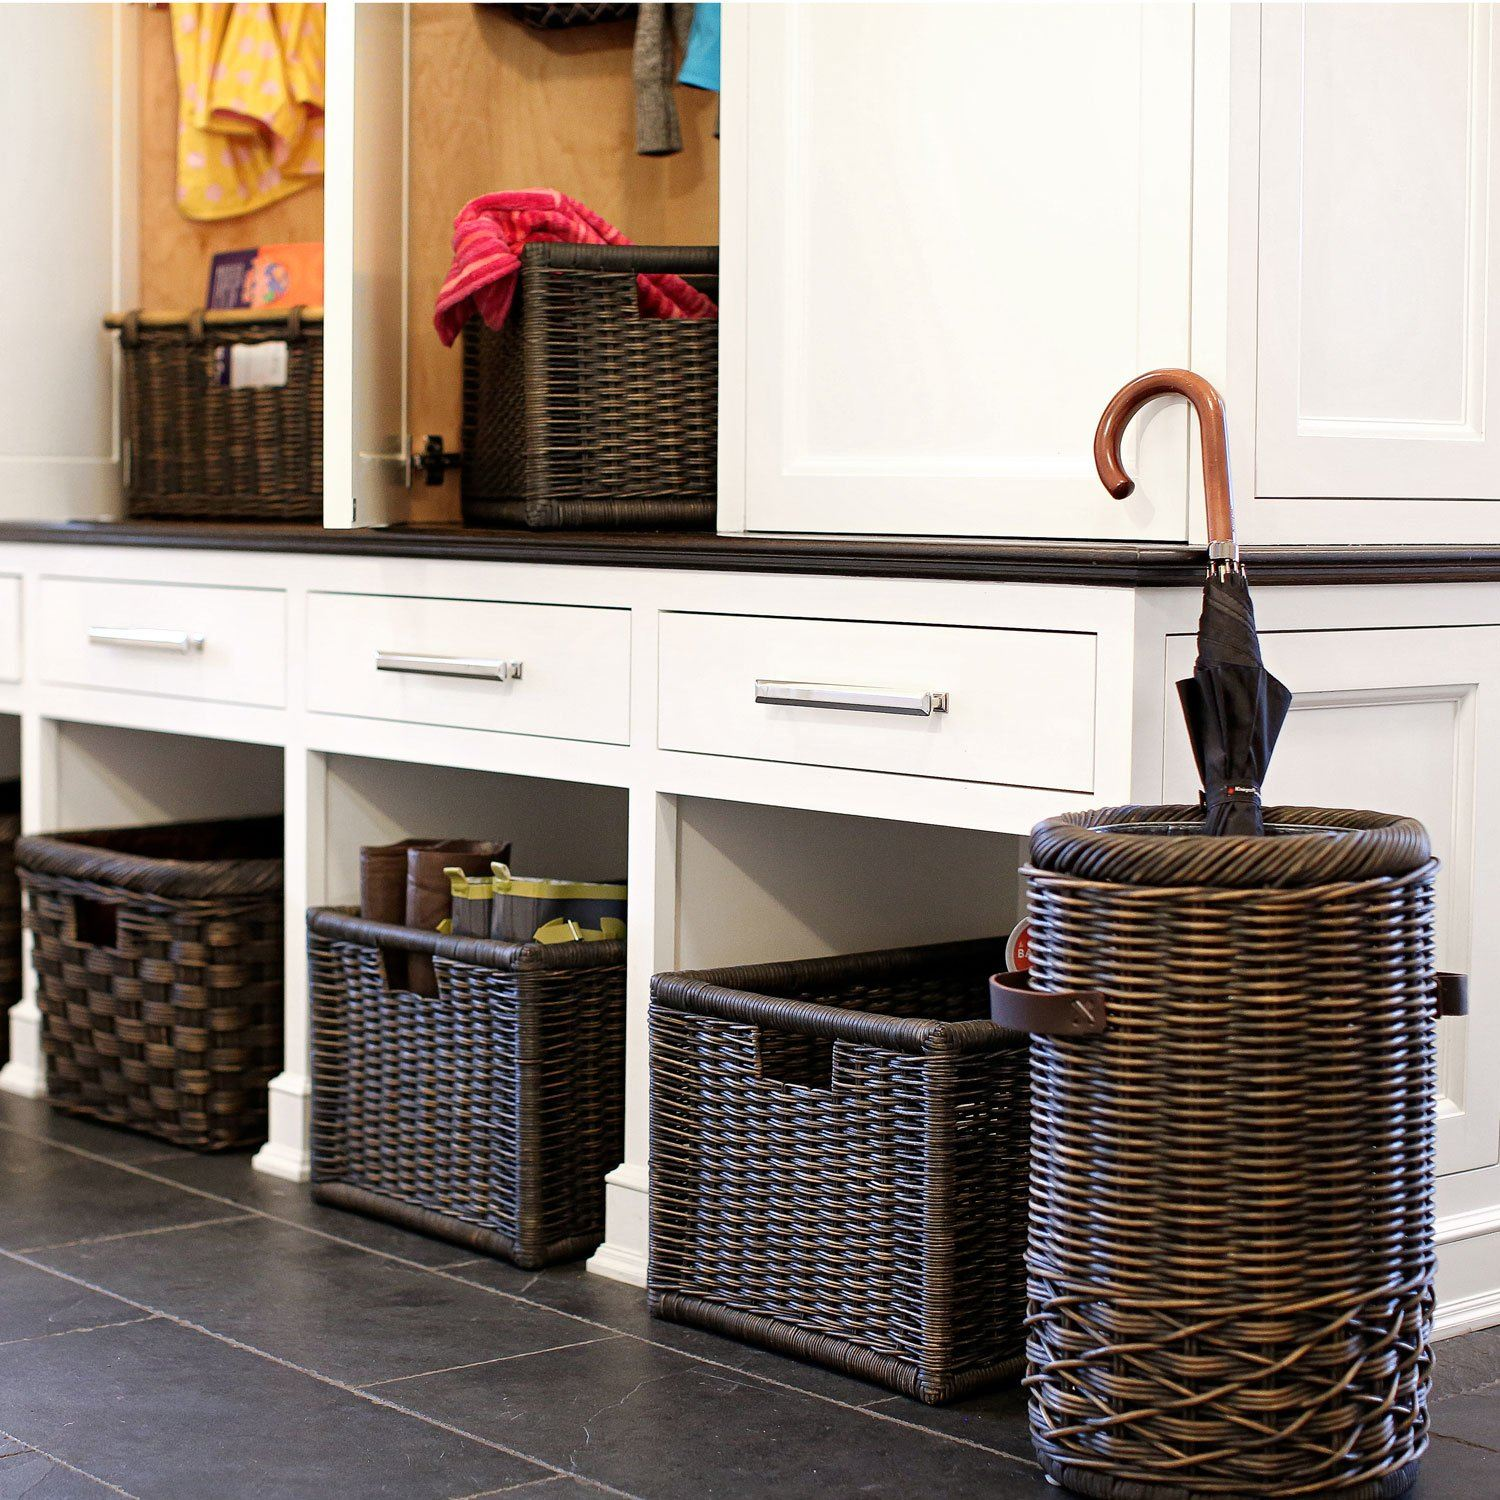 ... Wicker Kitchen Cabinet Basket In Large | Mudroom Storage | The Basket  Lady